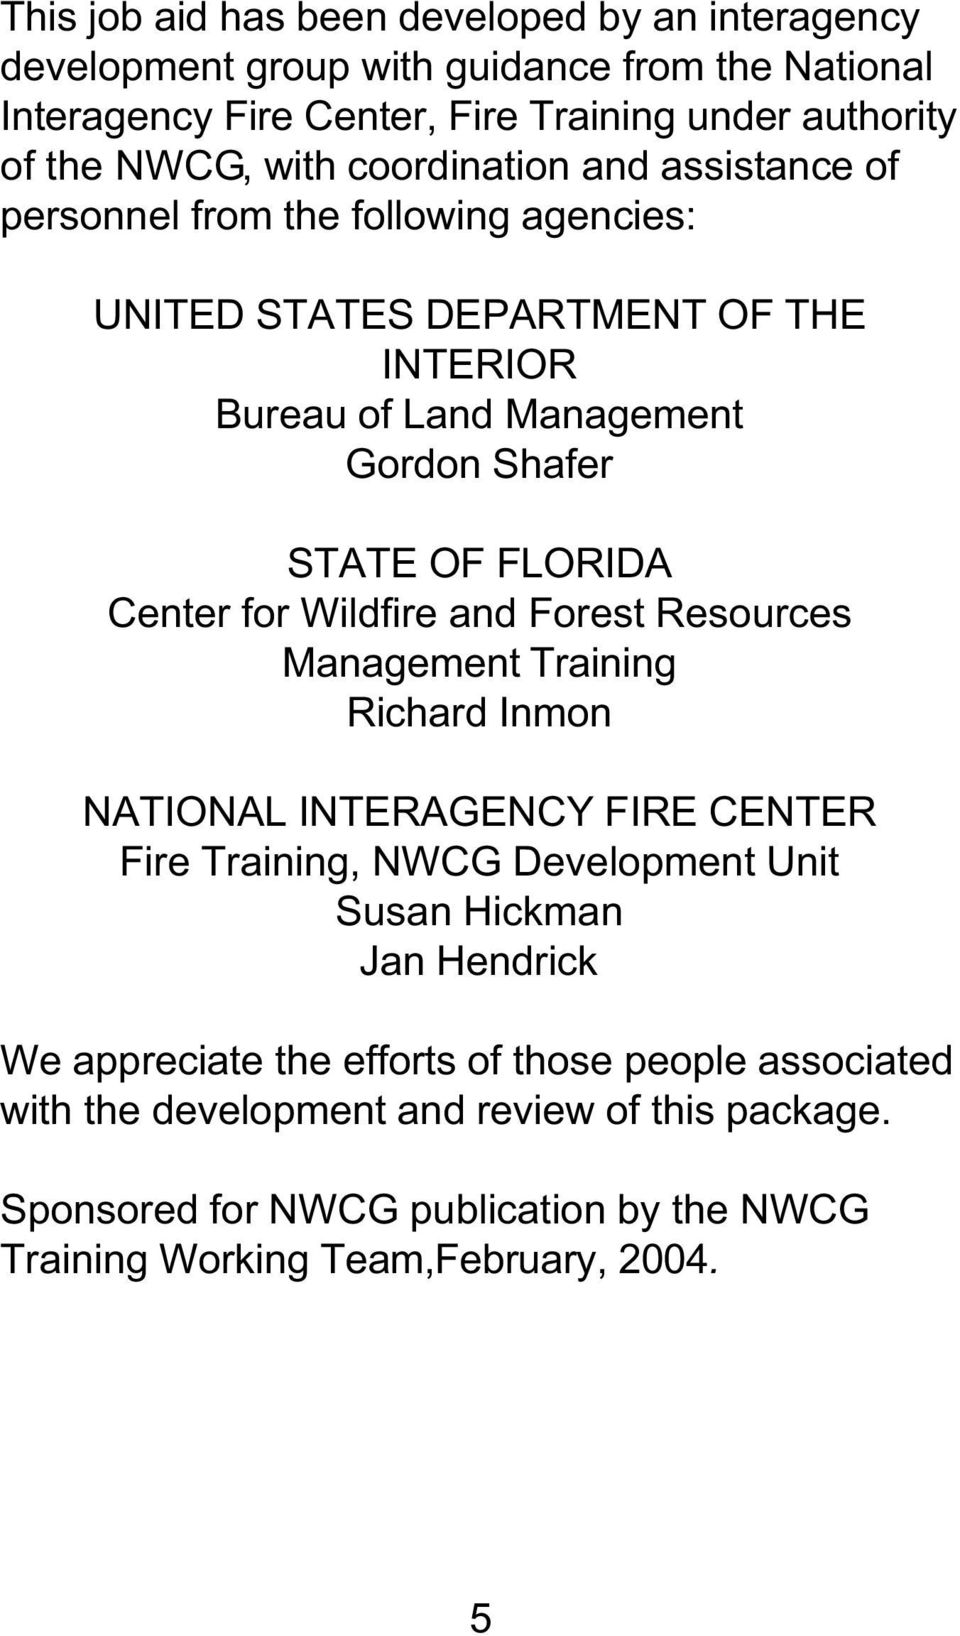 for Wildfire and Forest Resources Management Training Richard Inmon NATIONAL INTERAGENCY FIRE CENTER Fire Training, NWCG Development Unit Susan Hickman Jan Hendrick We